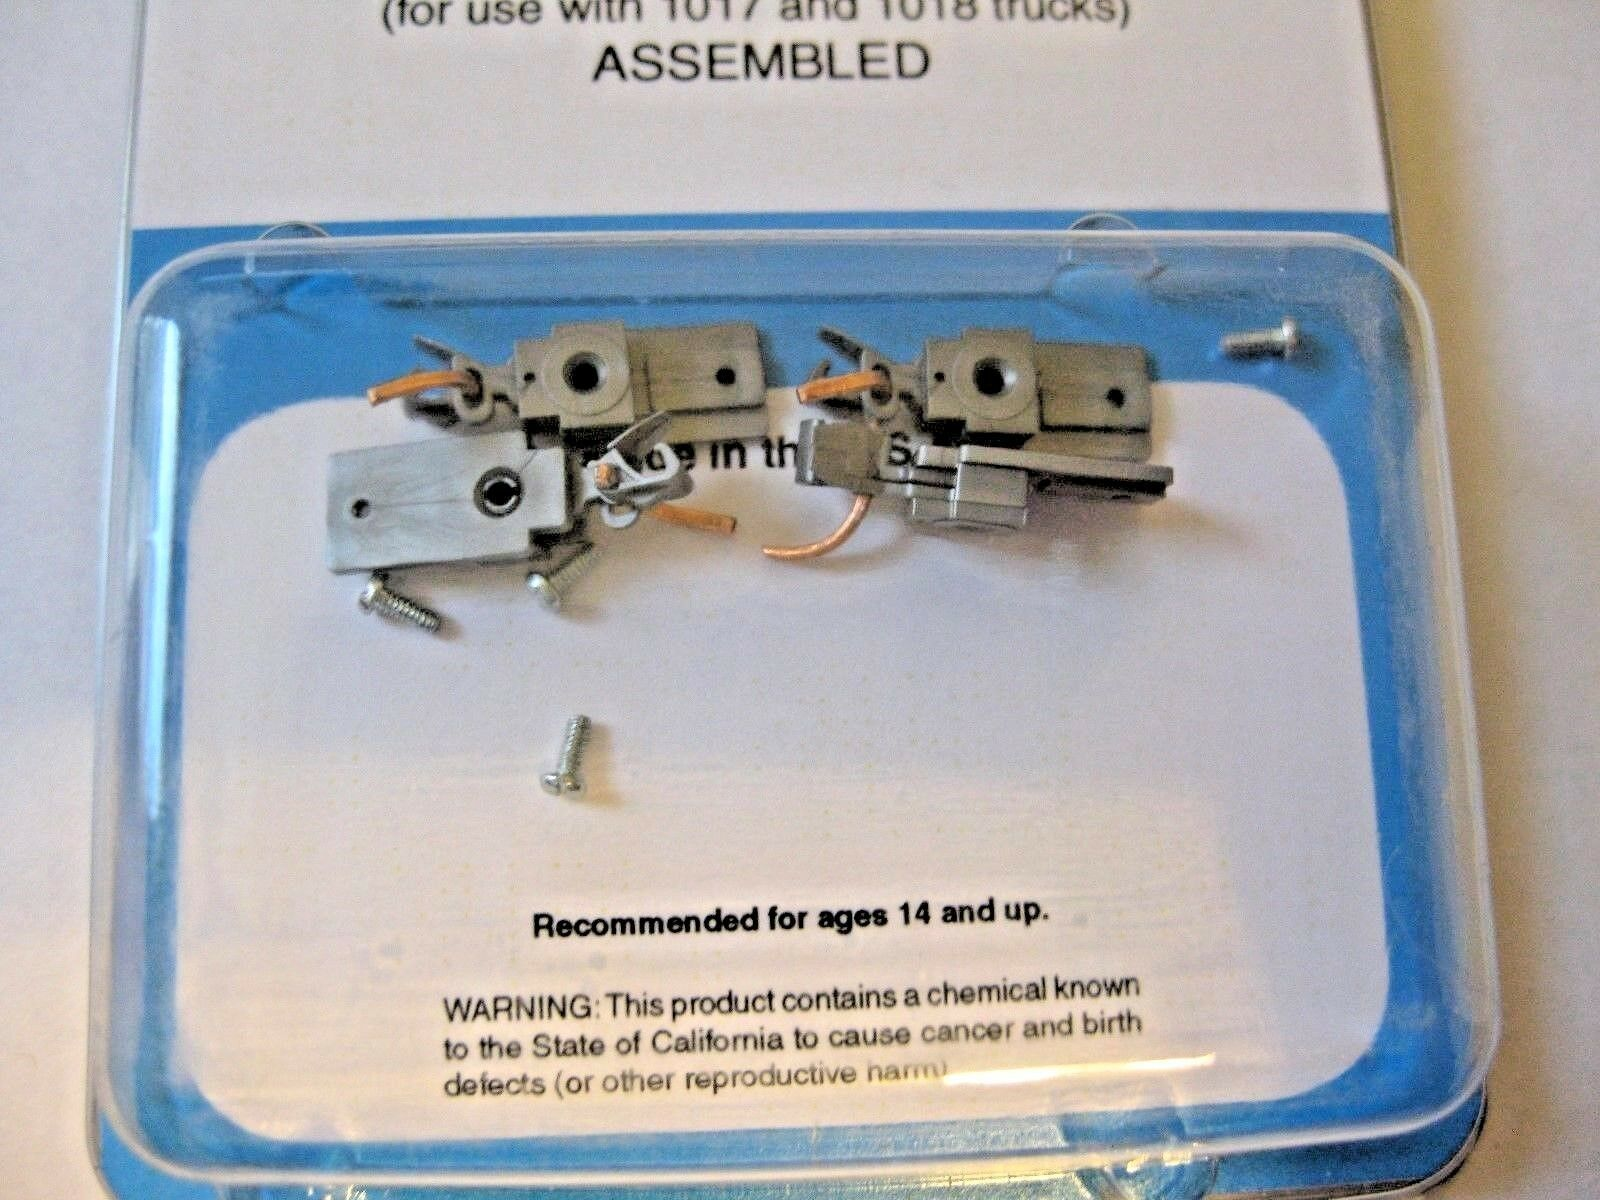 Micro-Trains Stock #00102026 Passenger Car Couplers Silver For 1017 & 1018 Truck